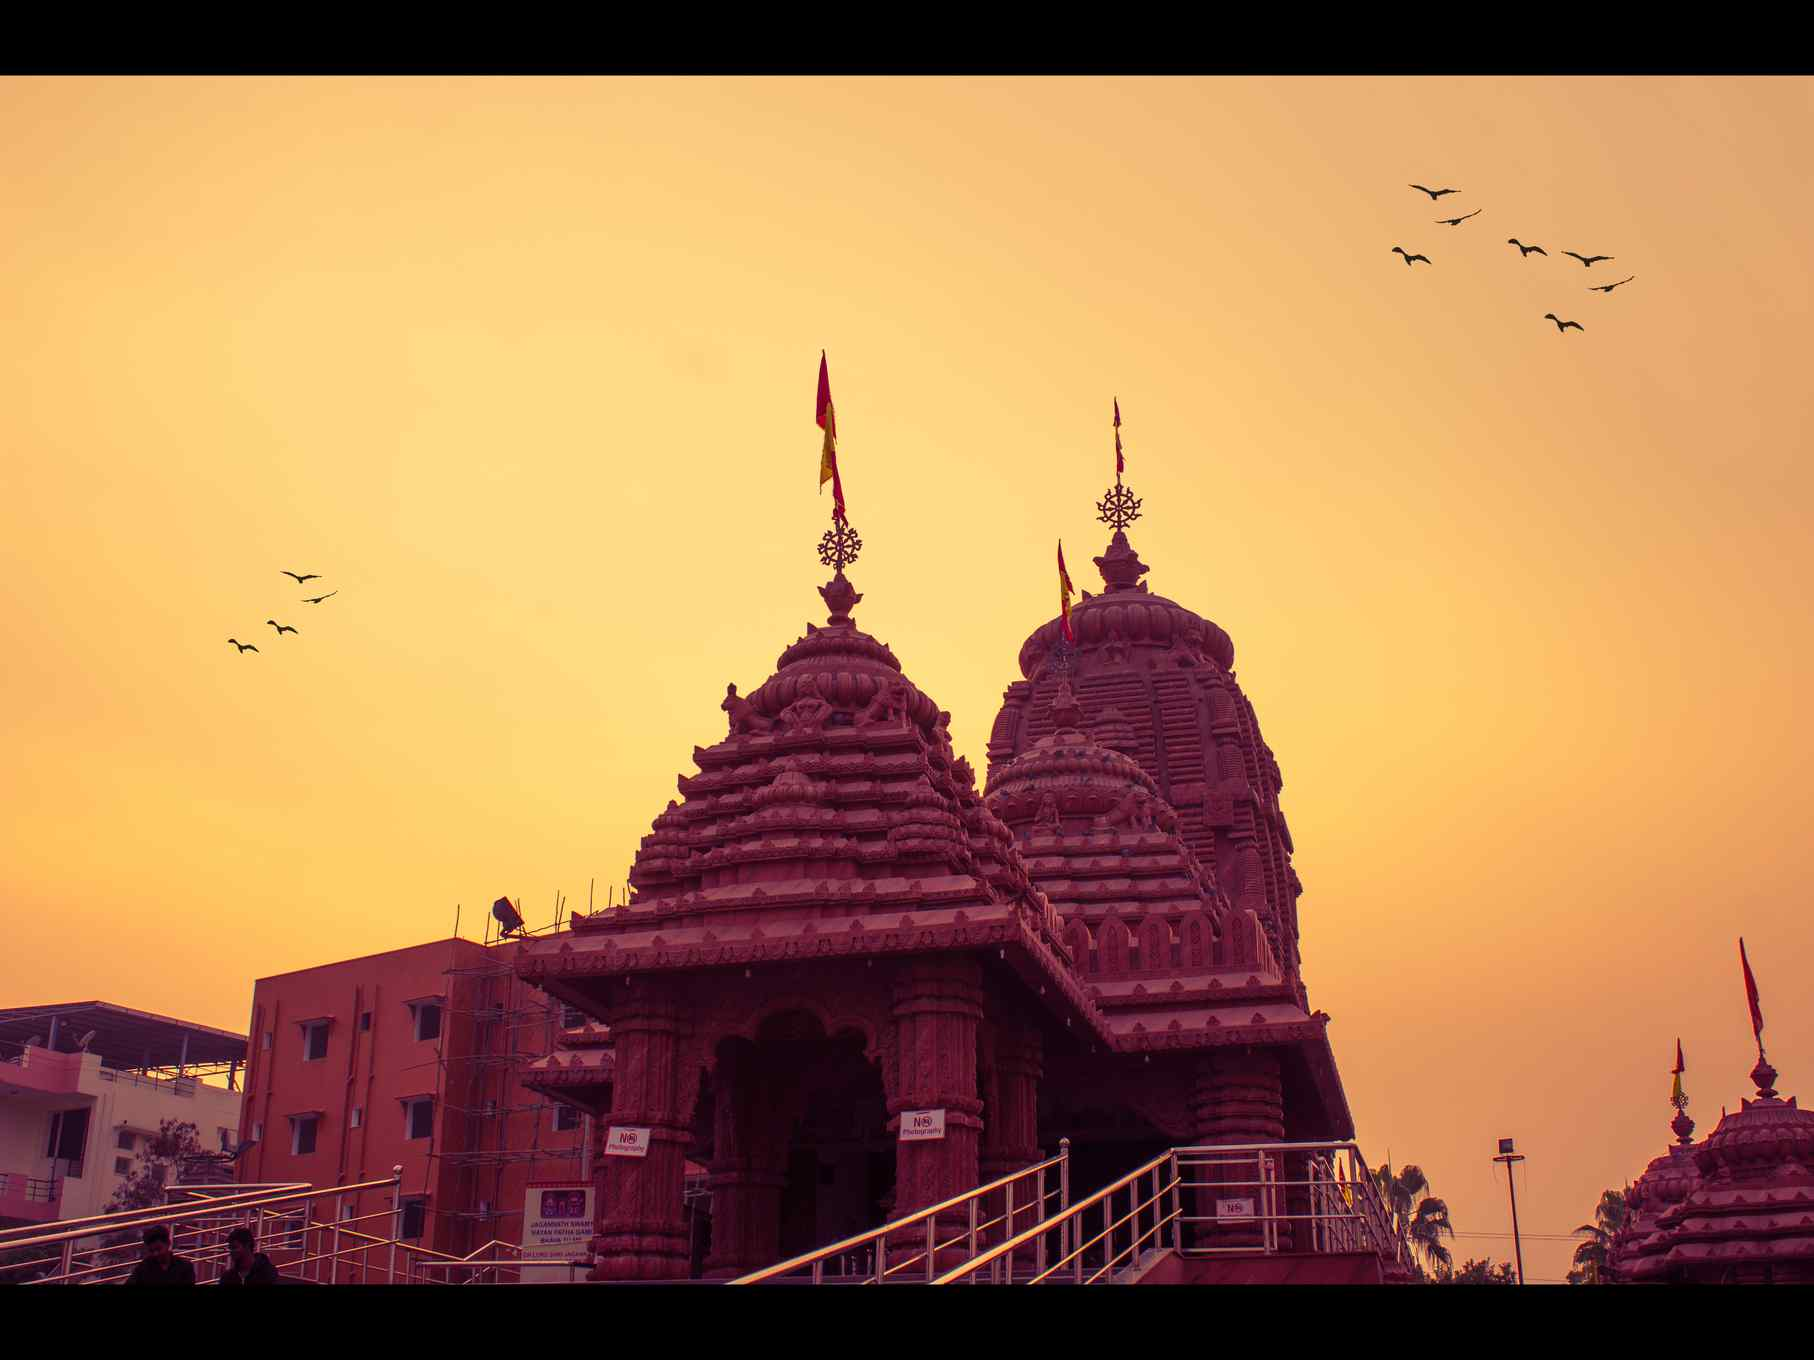 Shri Jagannath Temple Hyderabad